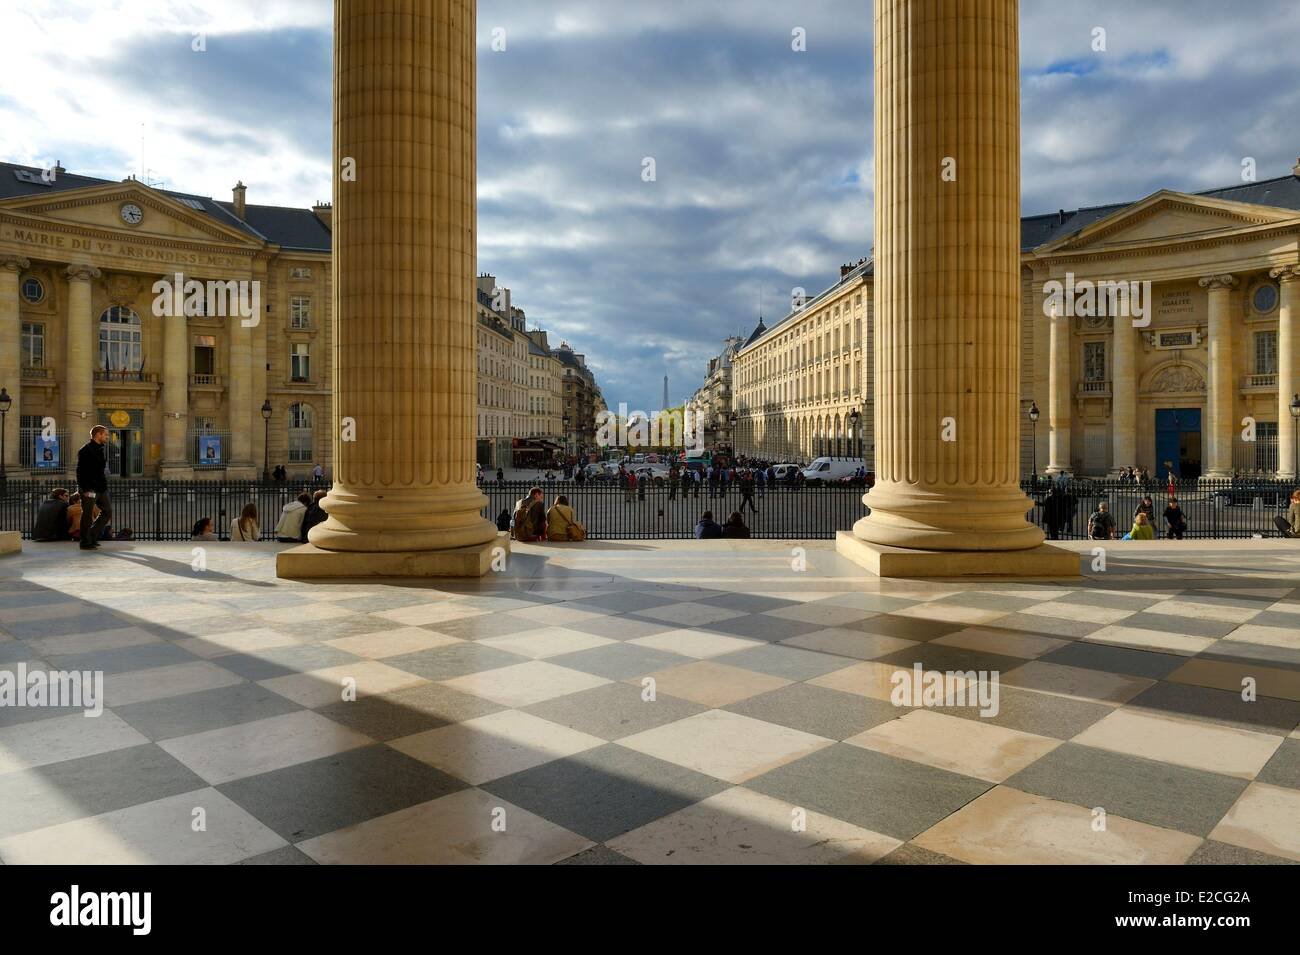 France, Paris, the Corinthian columns of the pediment of the Pantheon facing the Soufflot street, the town hall - Stock Image